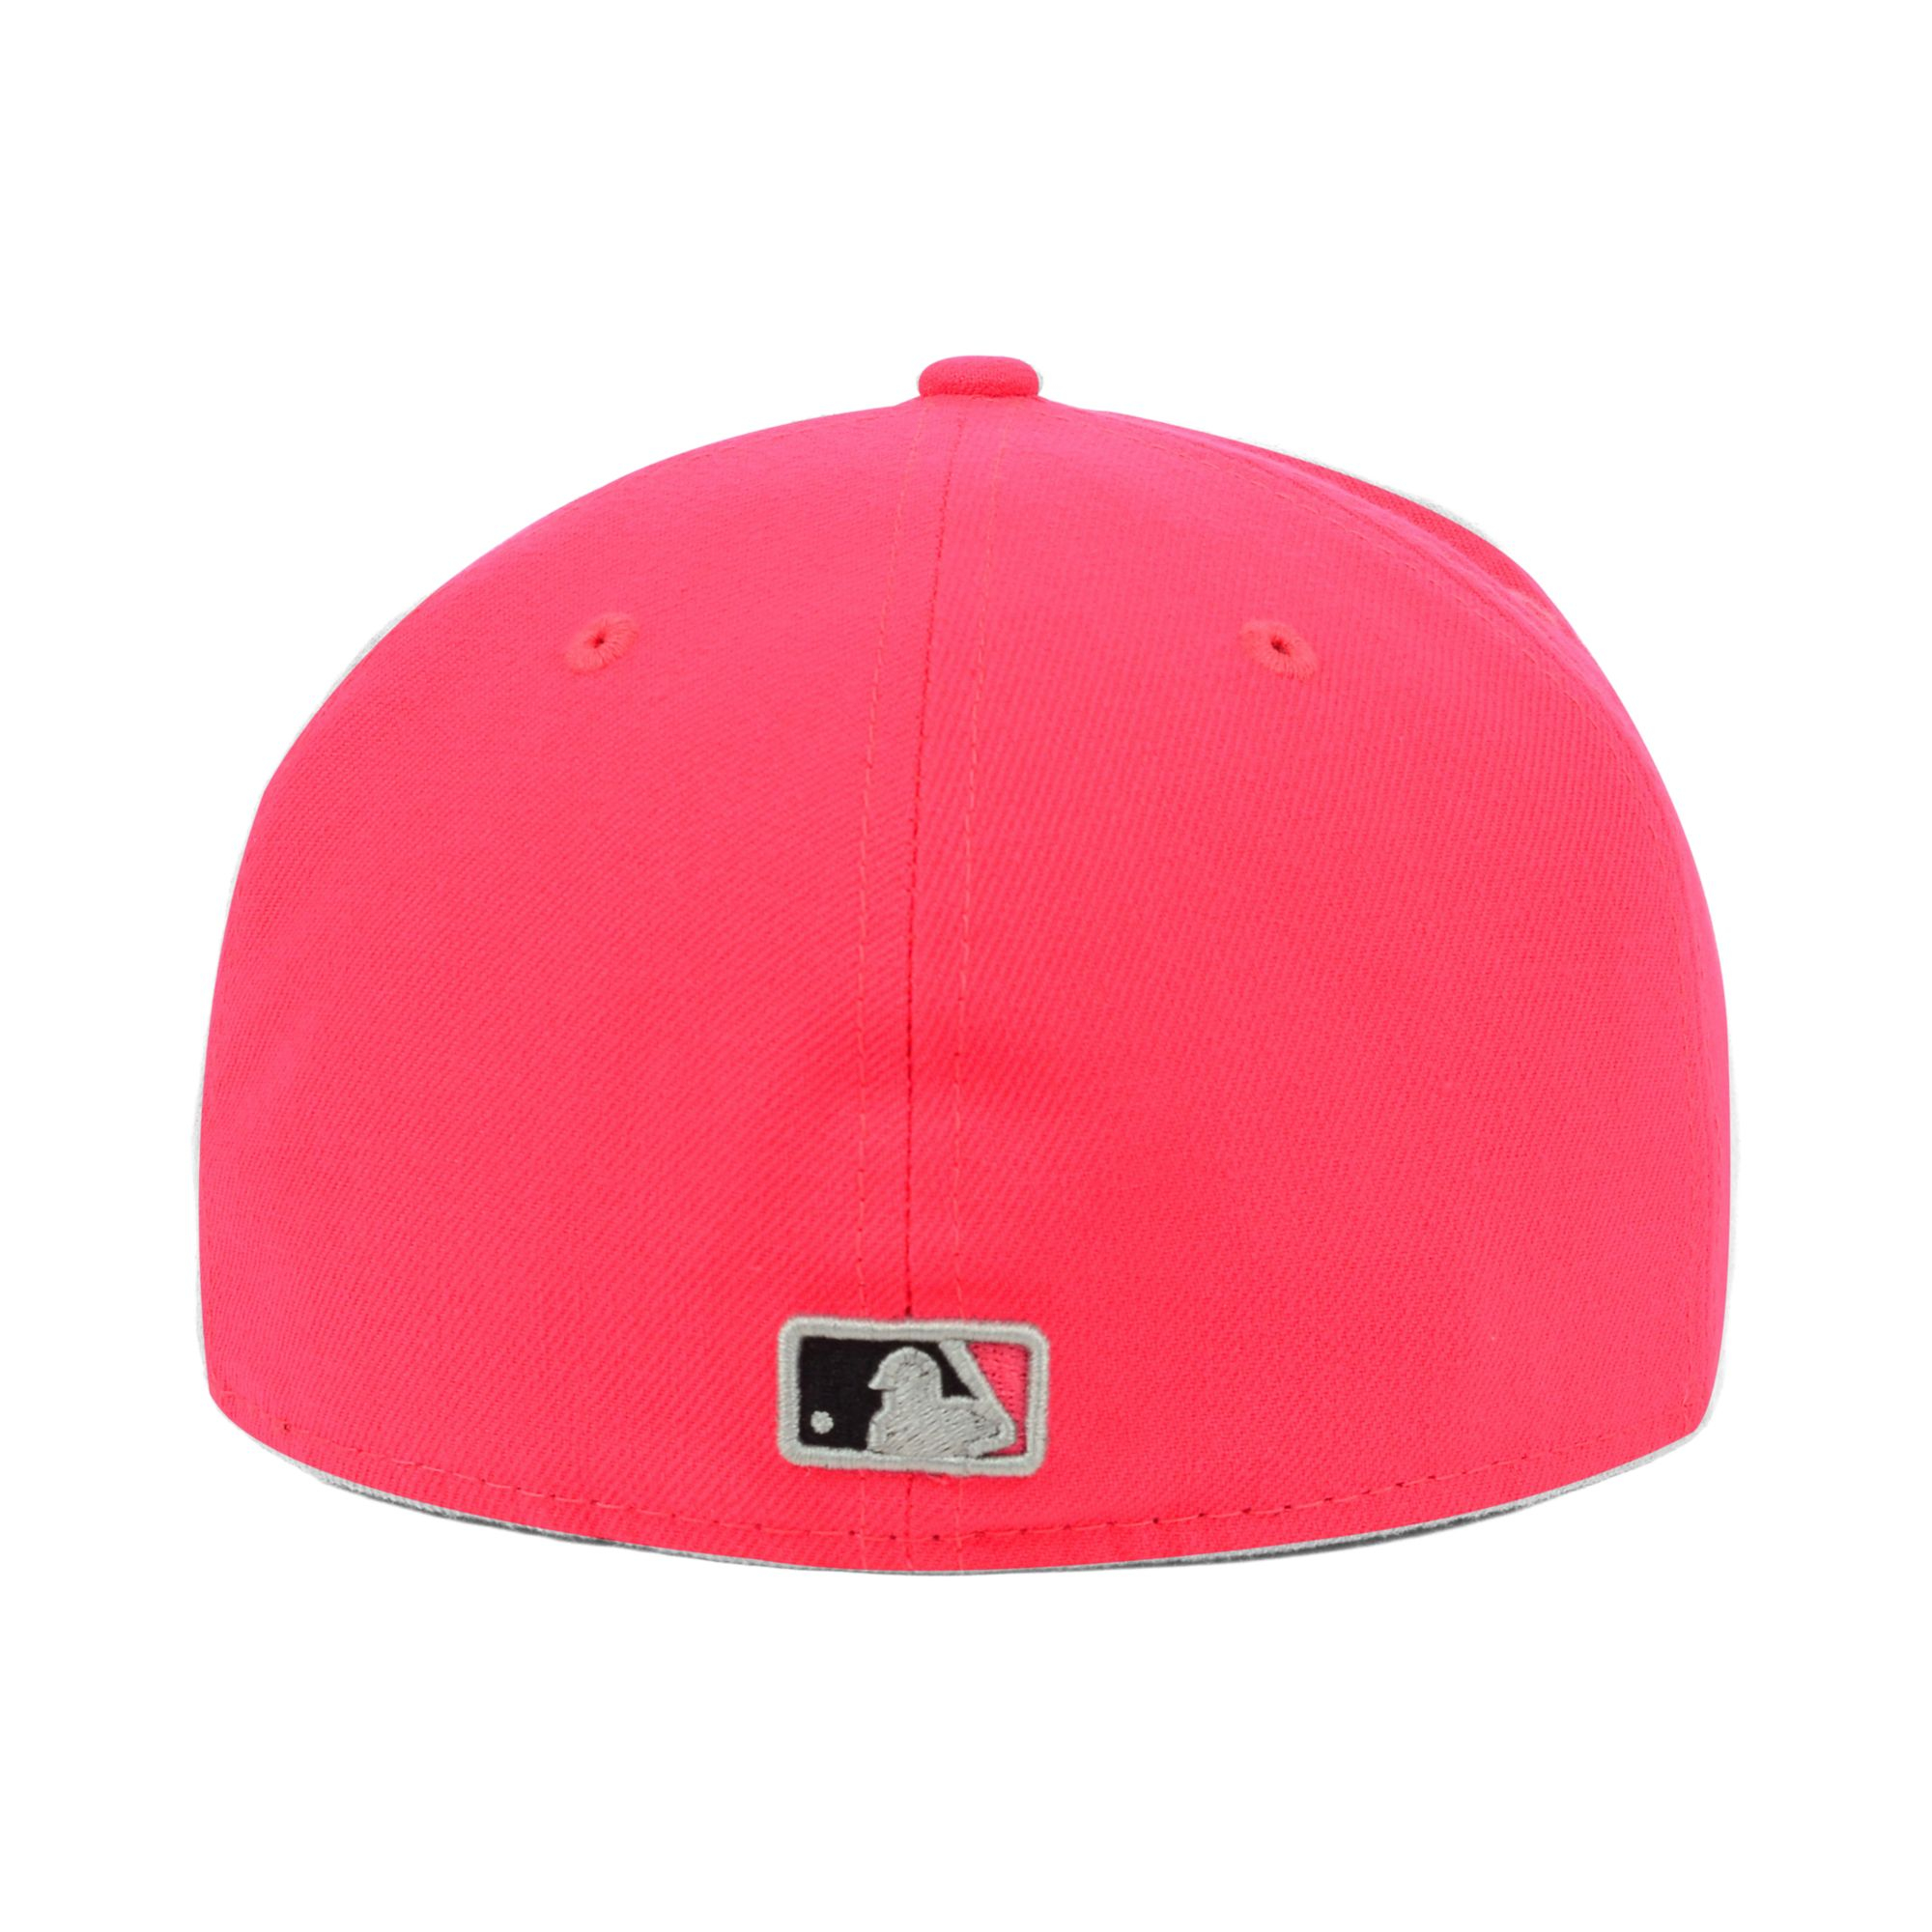 dcb87c3226b ... low cost lyst ktz miami marlins mlb amplify 59fifty cap in red for men  a6e37 11f04